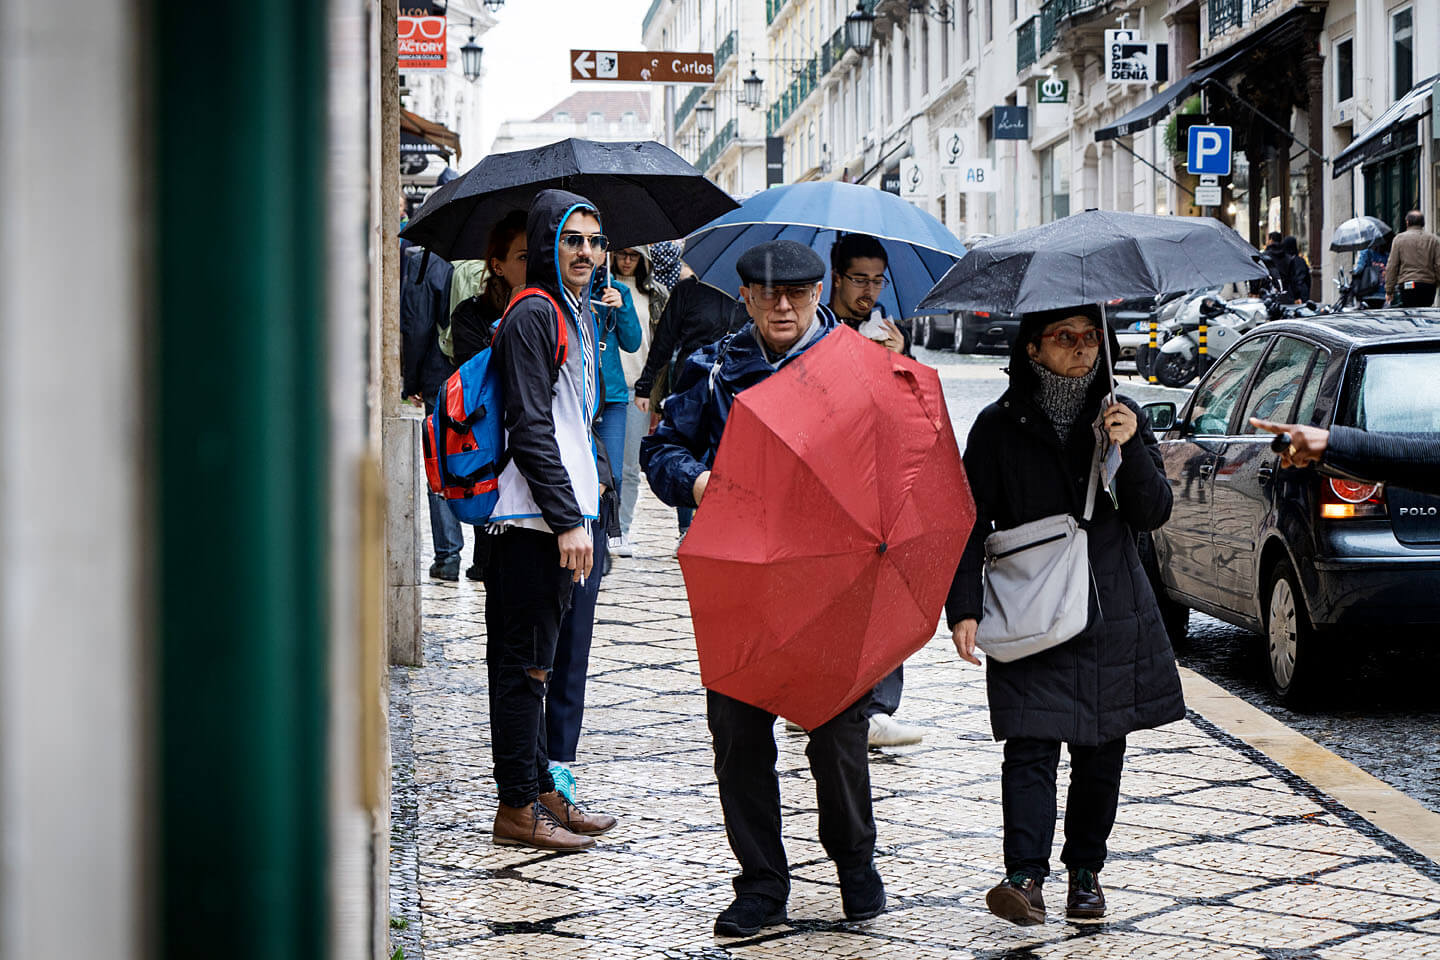 What to do in Lisbon on Rainy Days?